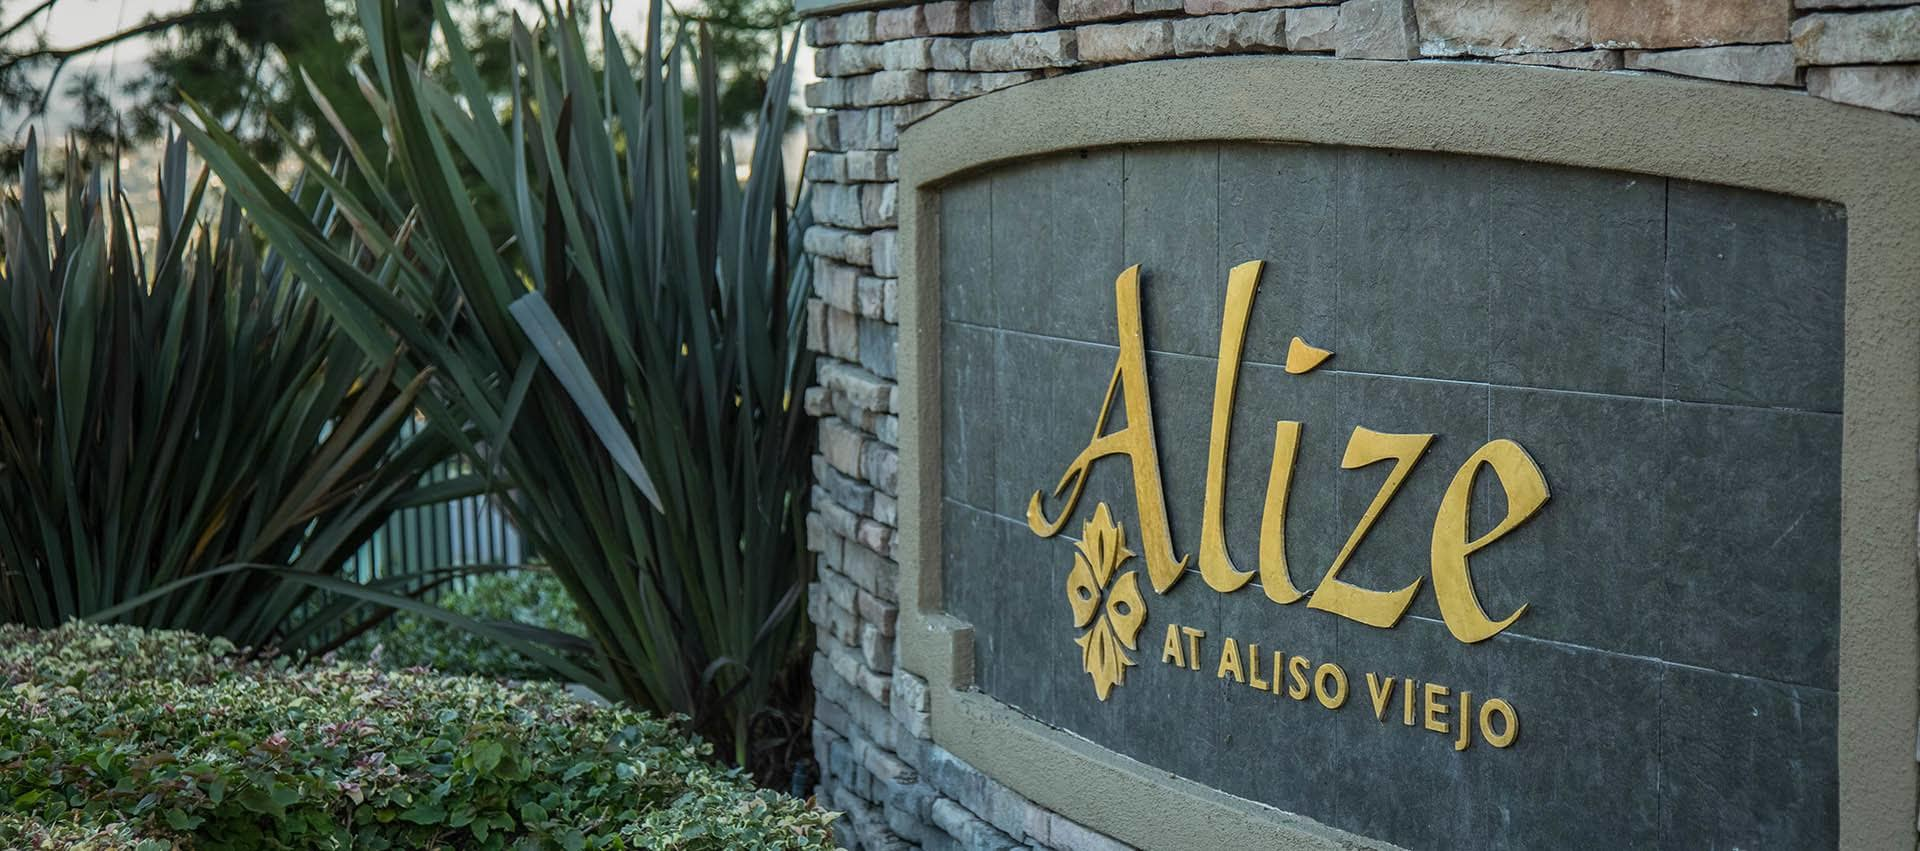 Alize At Aliso Viejo signage in Alize at Aliso Viejo Apartment Homes in Aliso Viejo, California